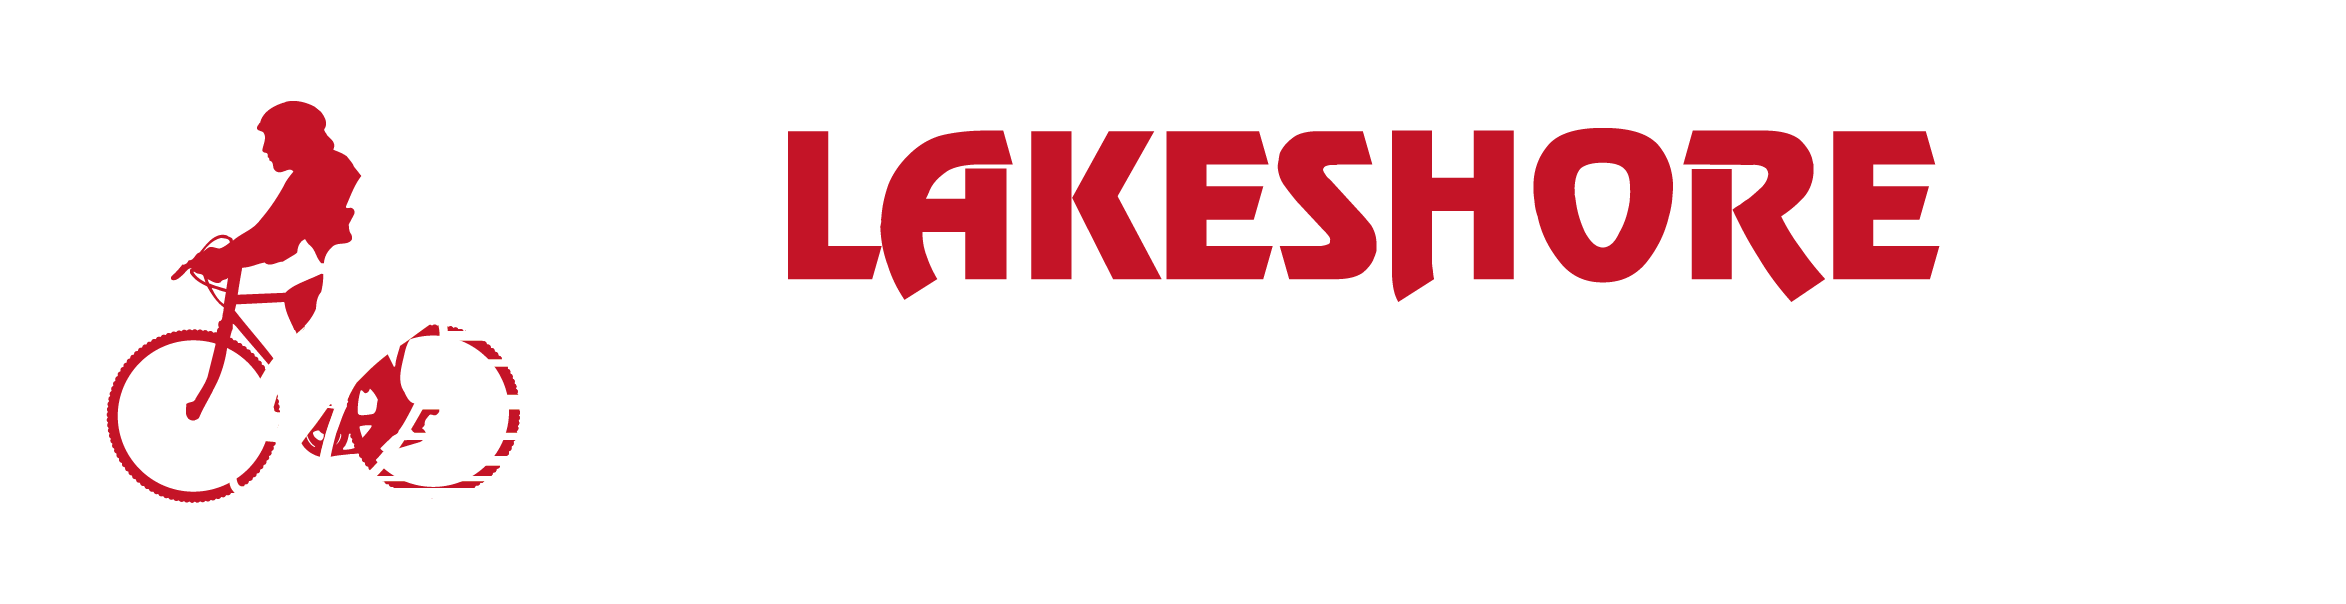 Lakeshore Cyclery and Fitness Inc